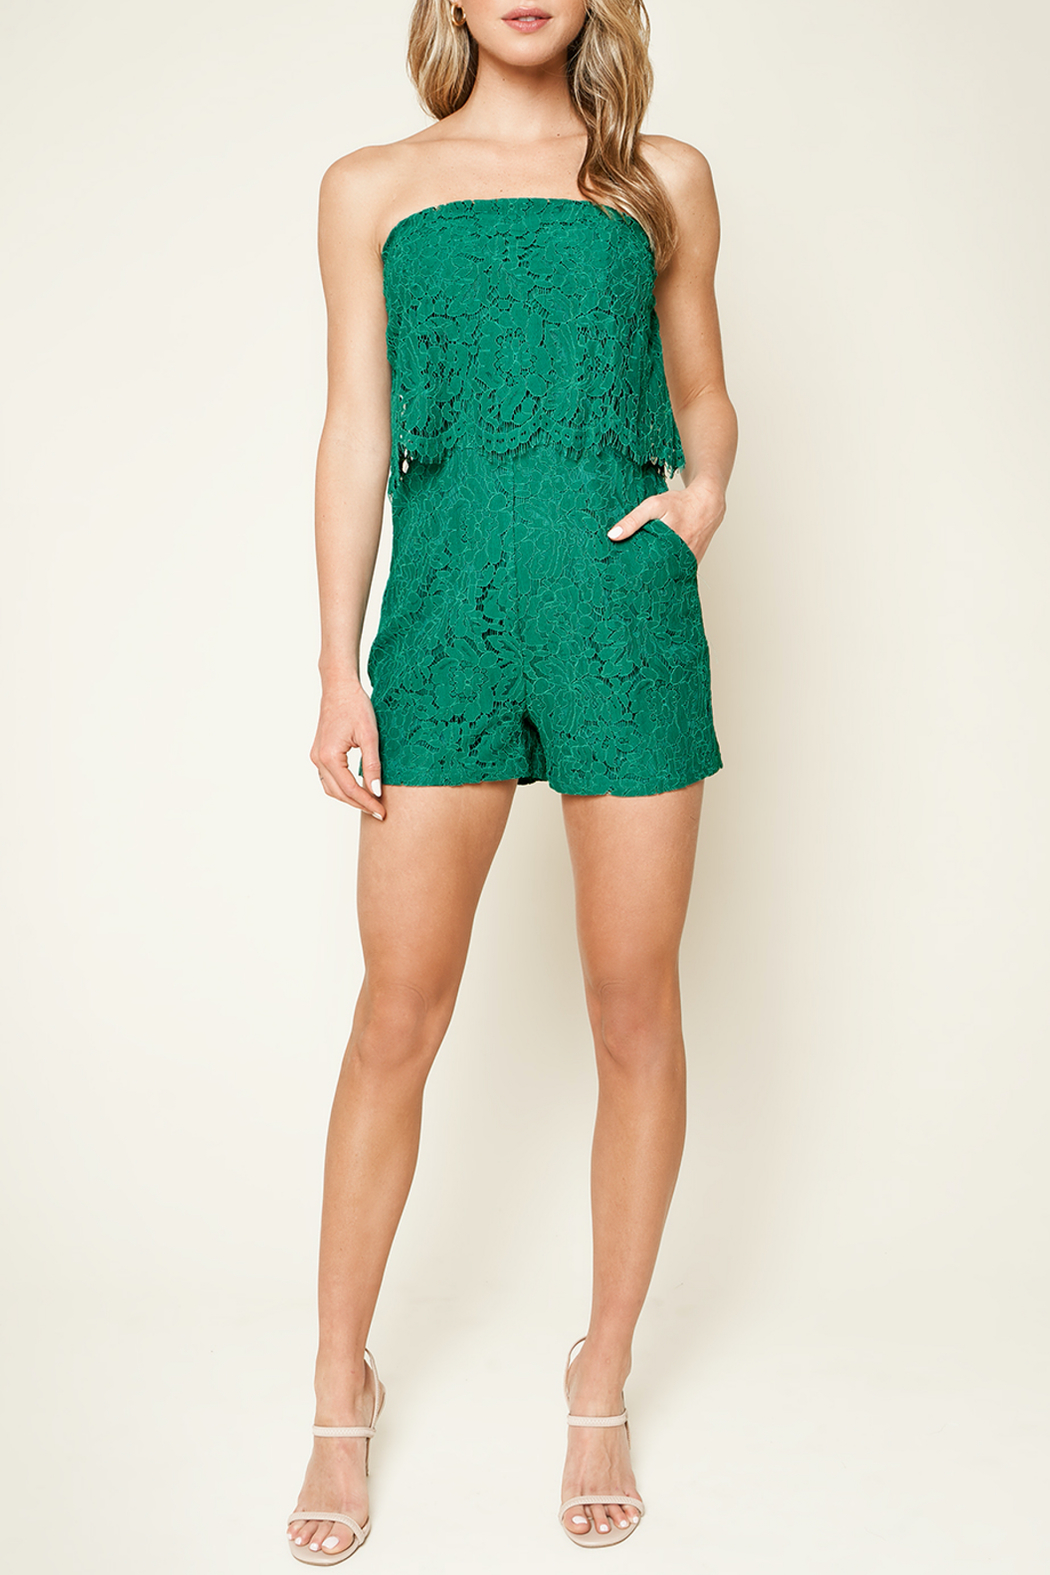 Sugarlips Emerald City Lace Romper - Back Cropped Image